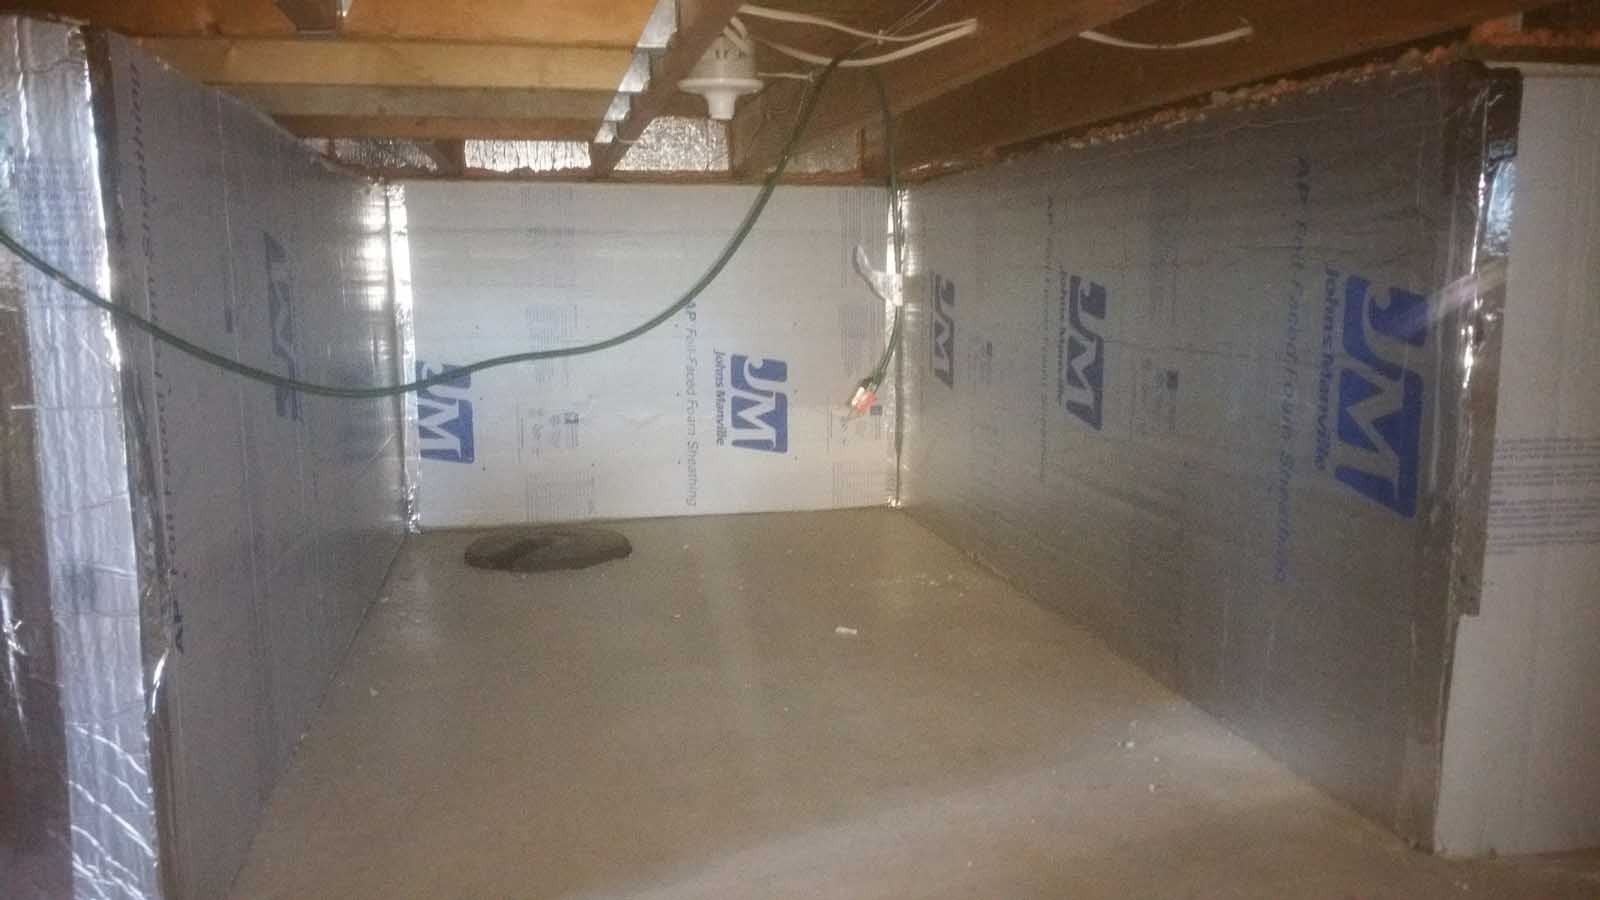 Crawl Space Installation, Thermax, MGT Insulation, Inc.